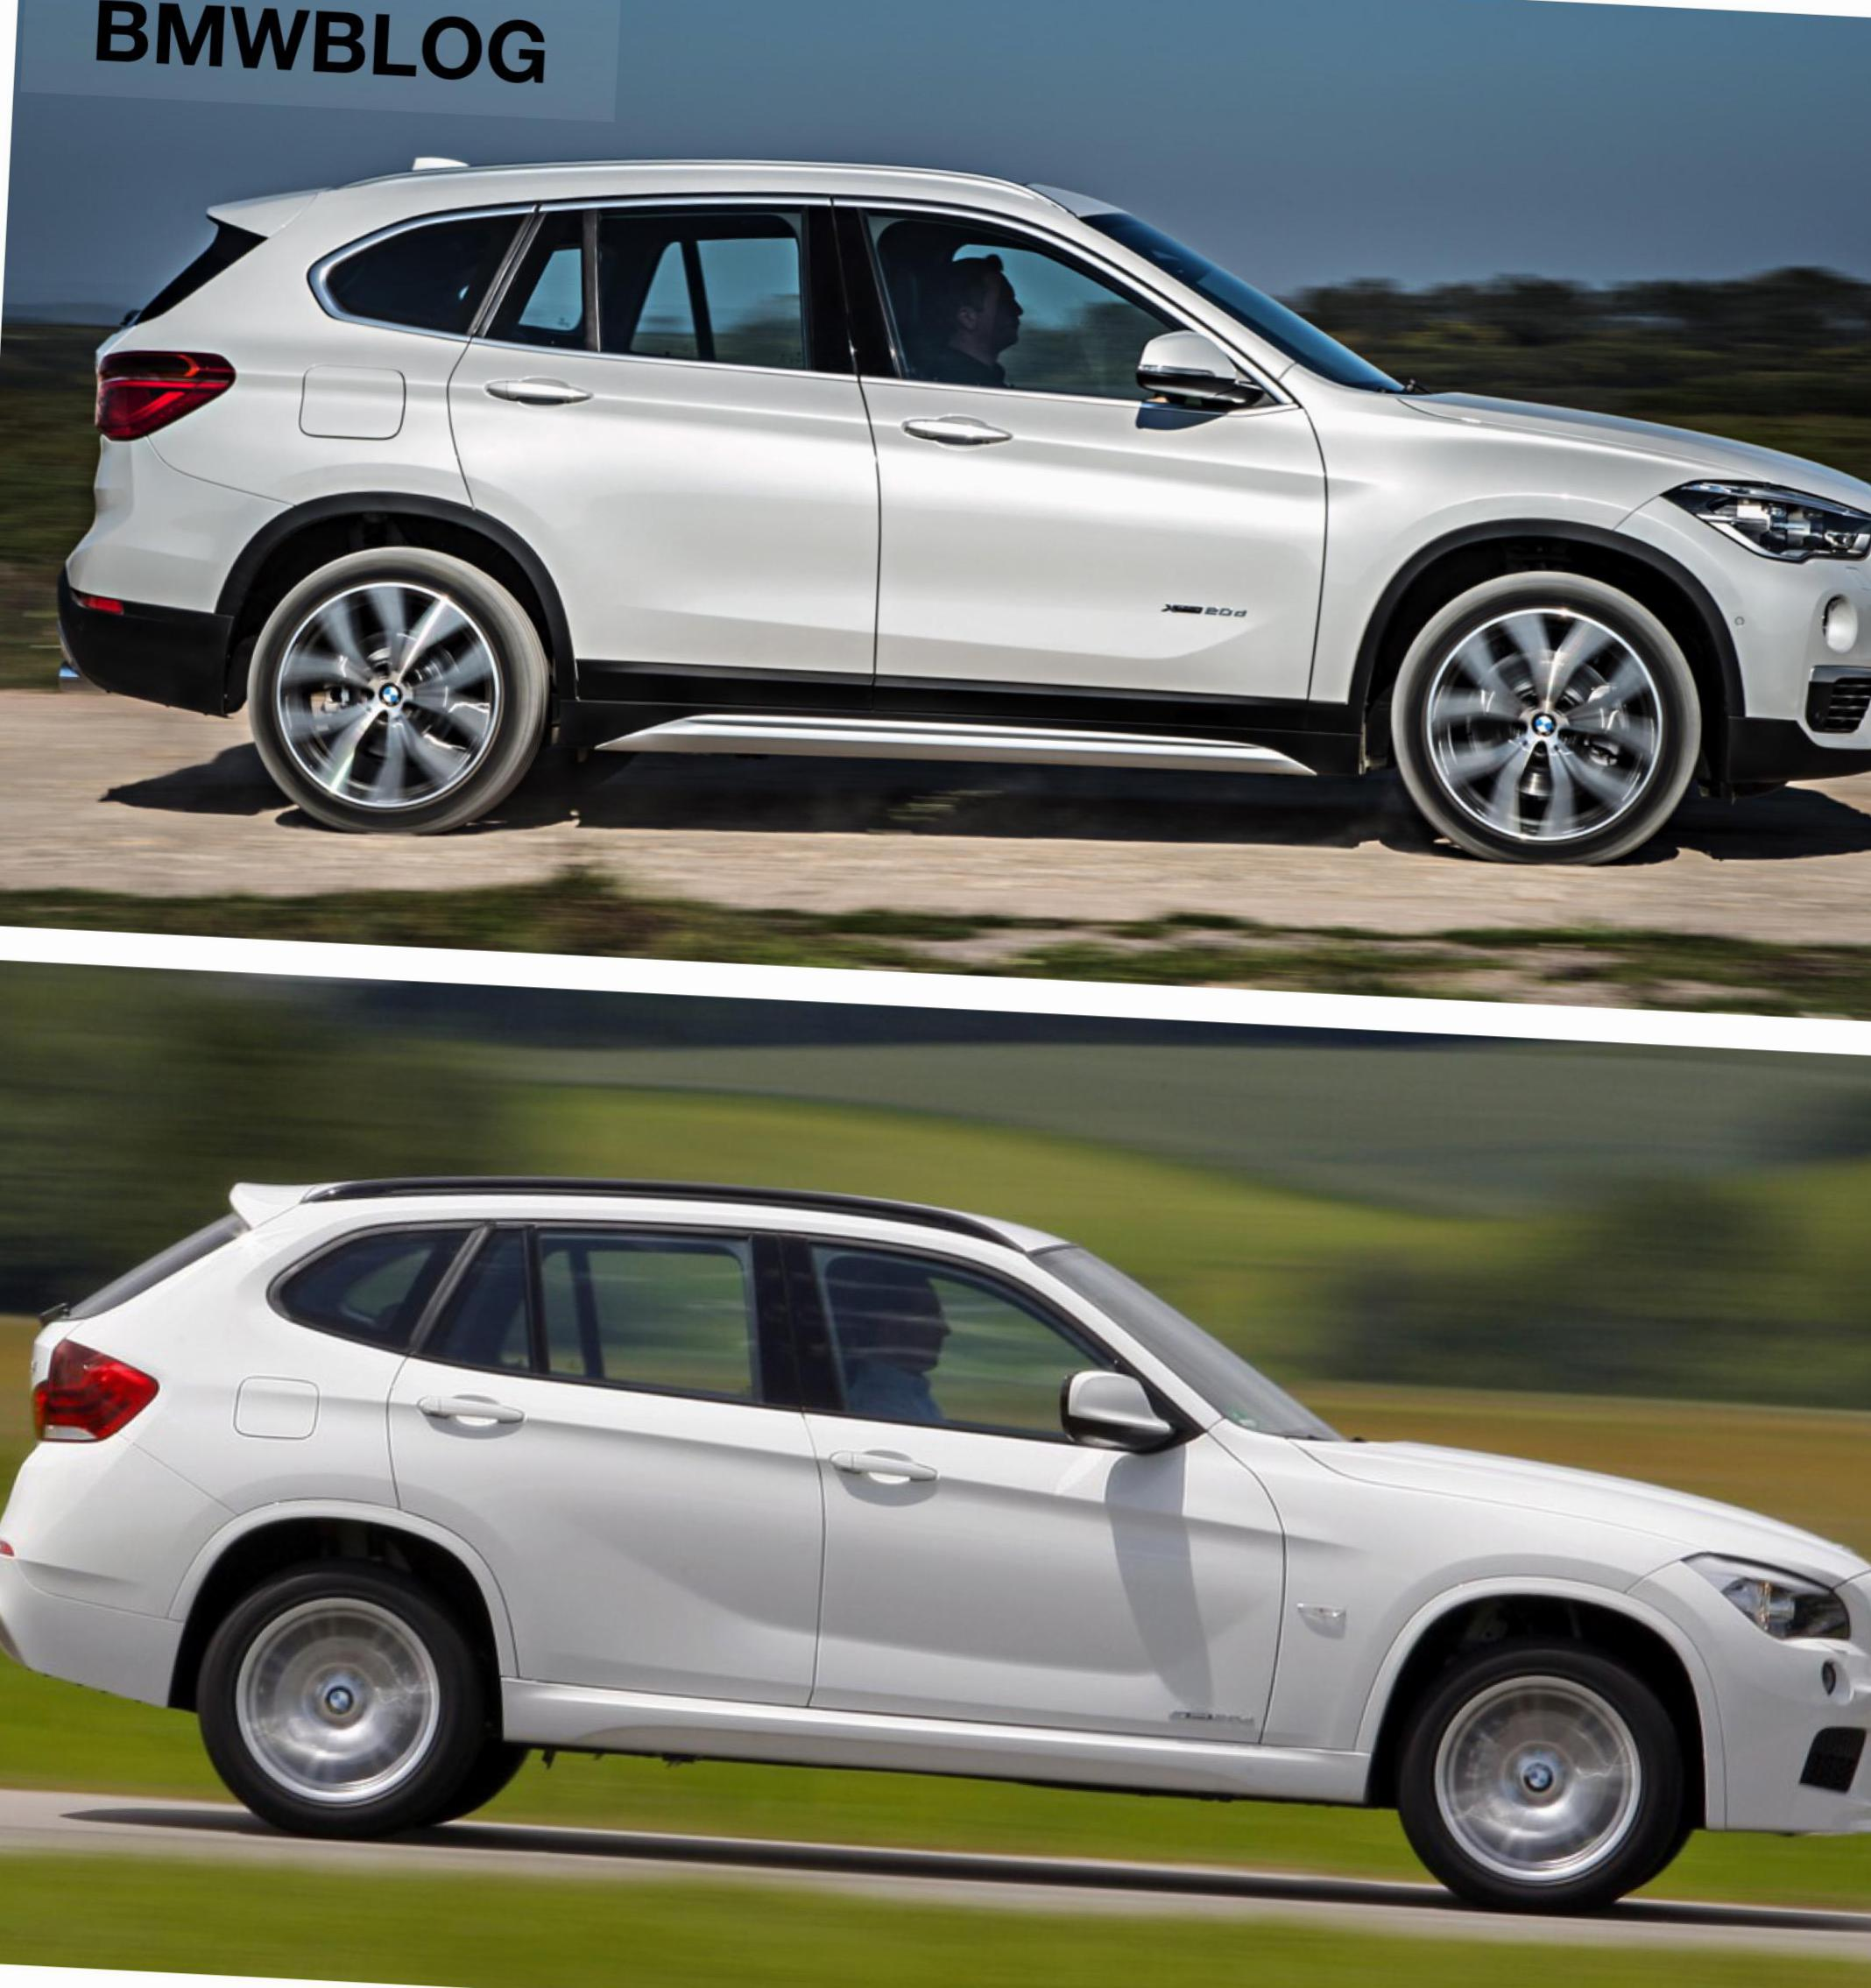 BMW X1 (F48) review 2010